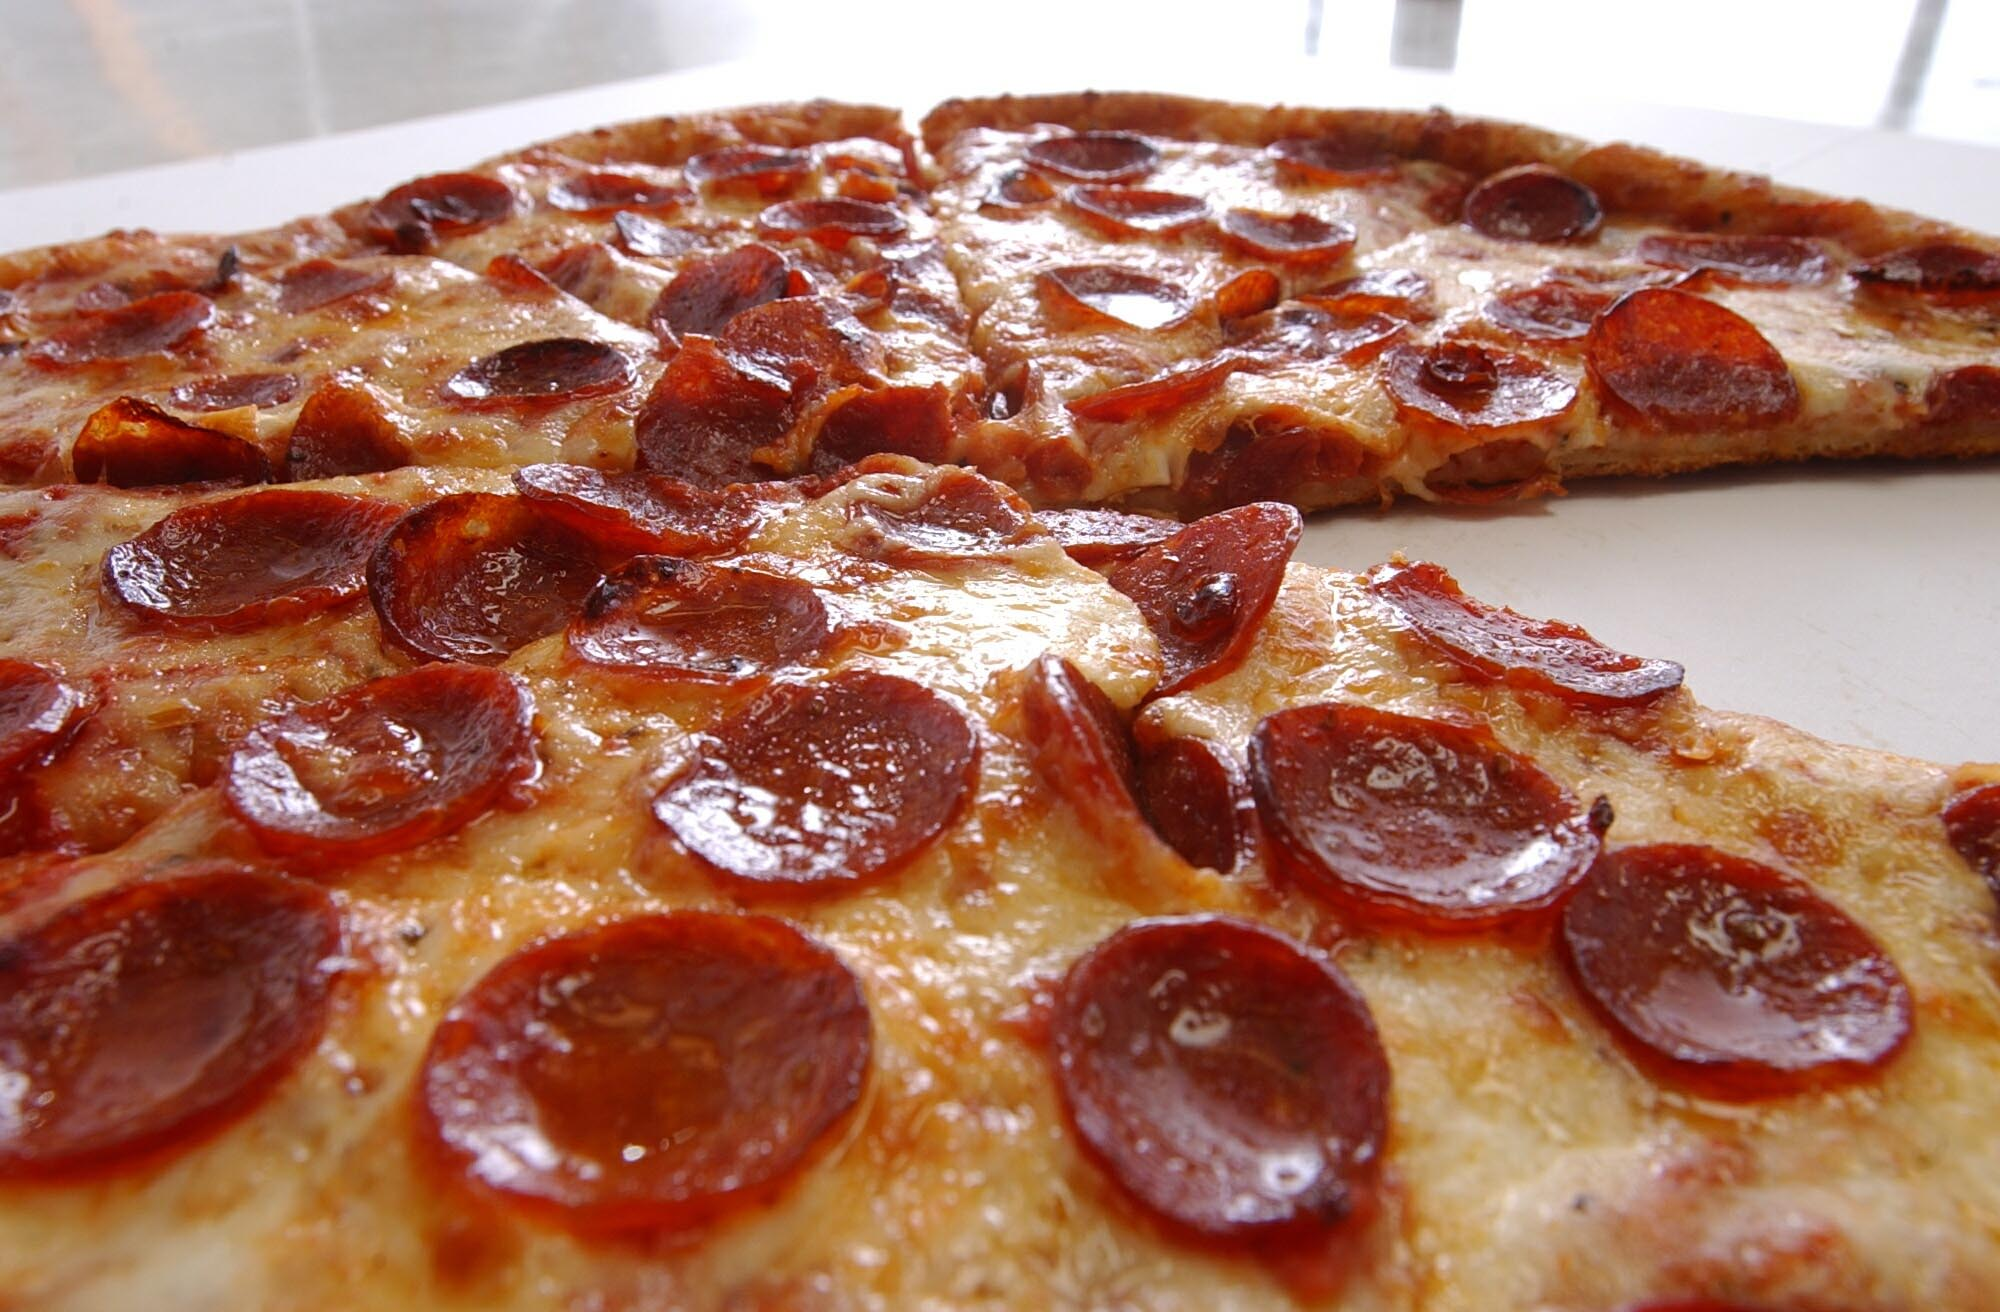 Chip in for pizza and wings with friends at home to save money. (Buffalo News file photo)